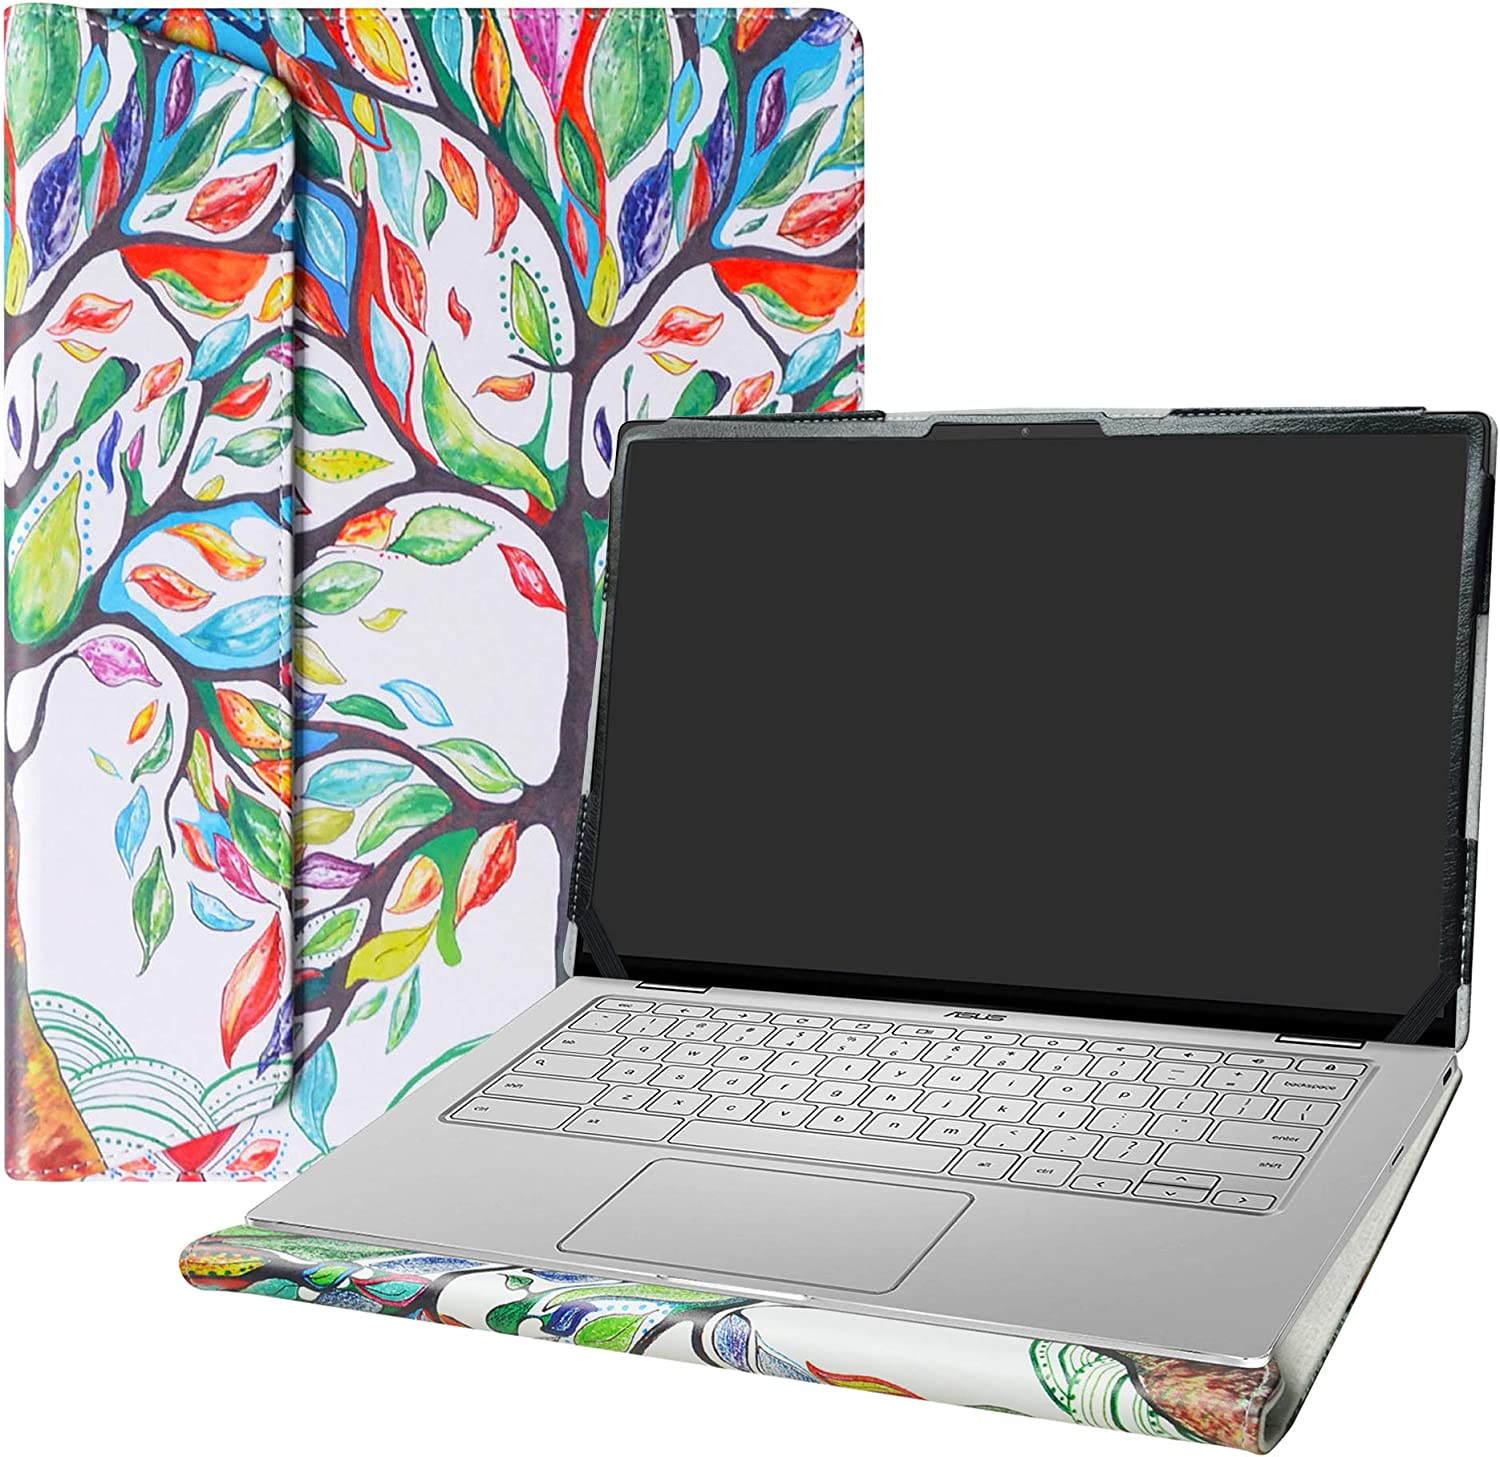 """Alapmk Protective Case Cover for 14"""" ASUS Chromebook Flip C434 C434TA/ASUS Chromebook C403NA Series Laptop(Warning:Not fit ASUS Chromebook C423NA),Love Tree"""